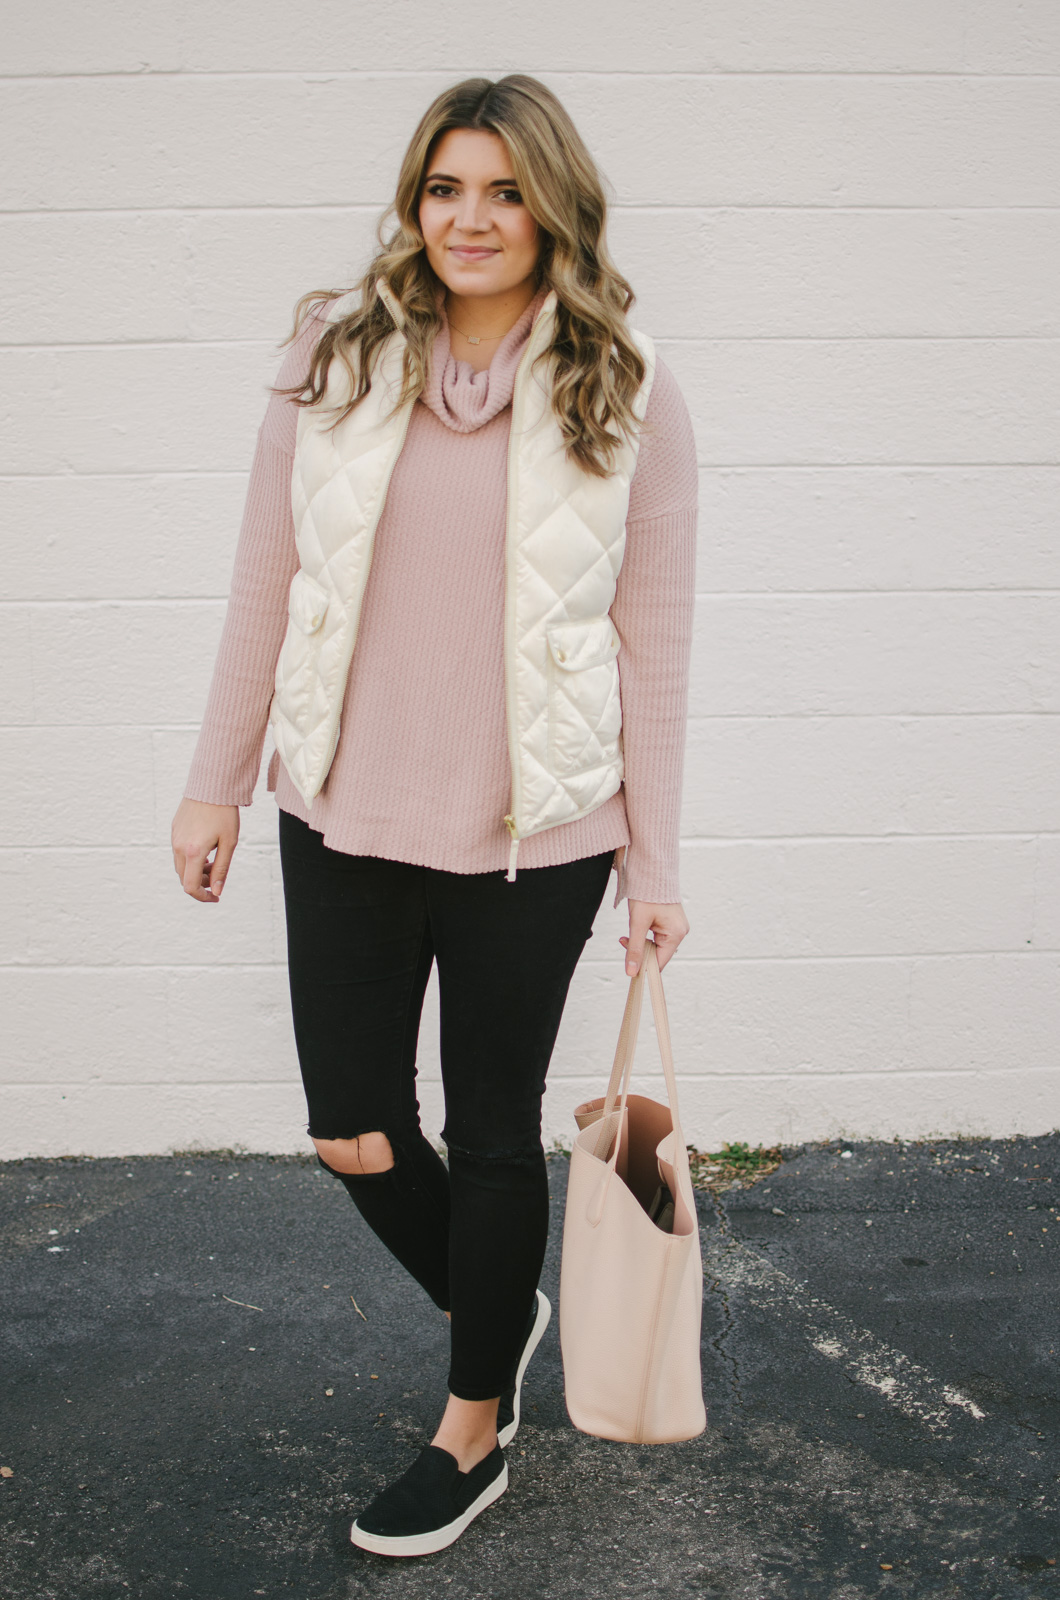 puffer vest outfit white - how wear puffer vest | shop this look or see more winter outfits at bylaurenm.com!